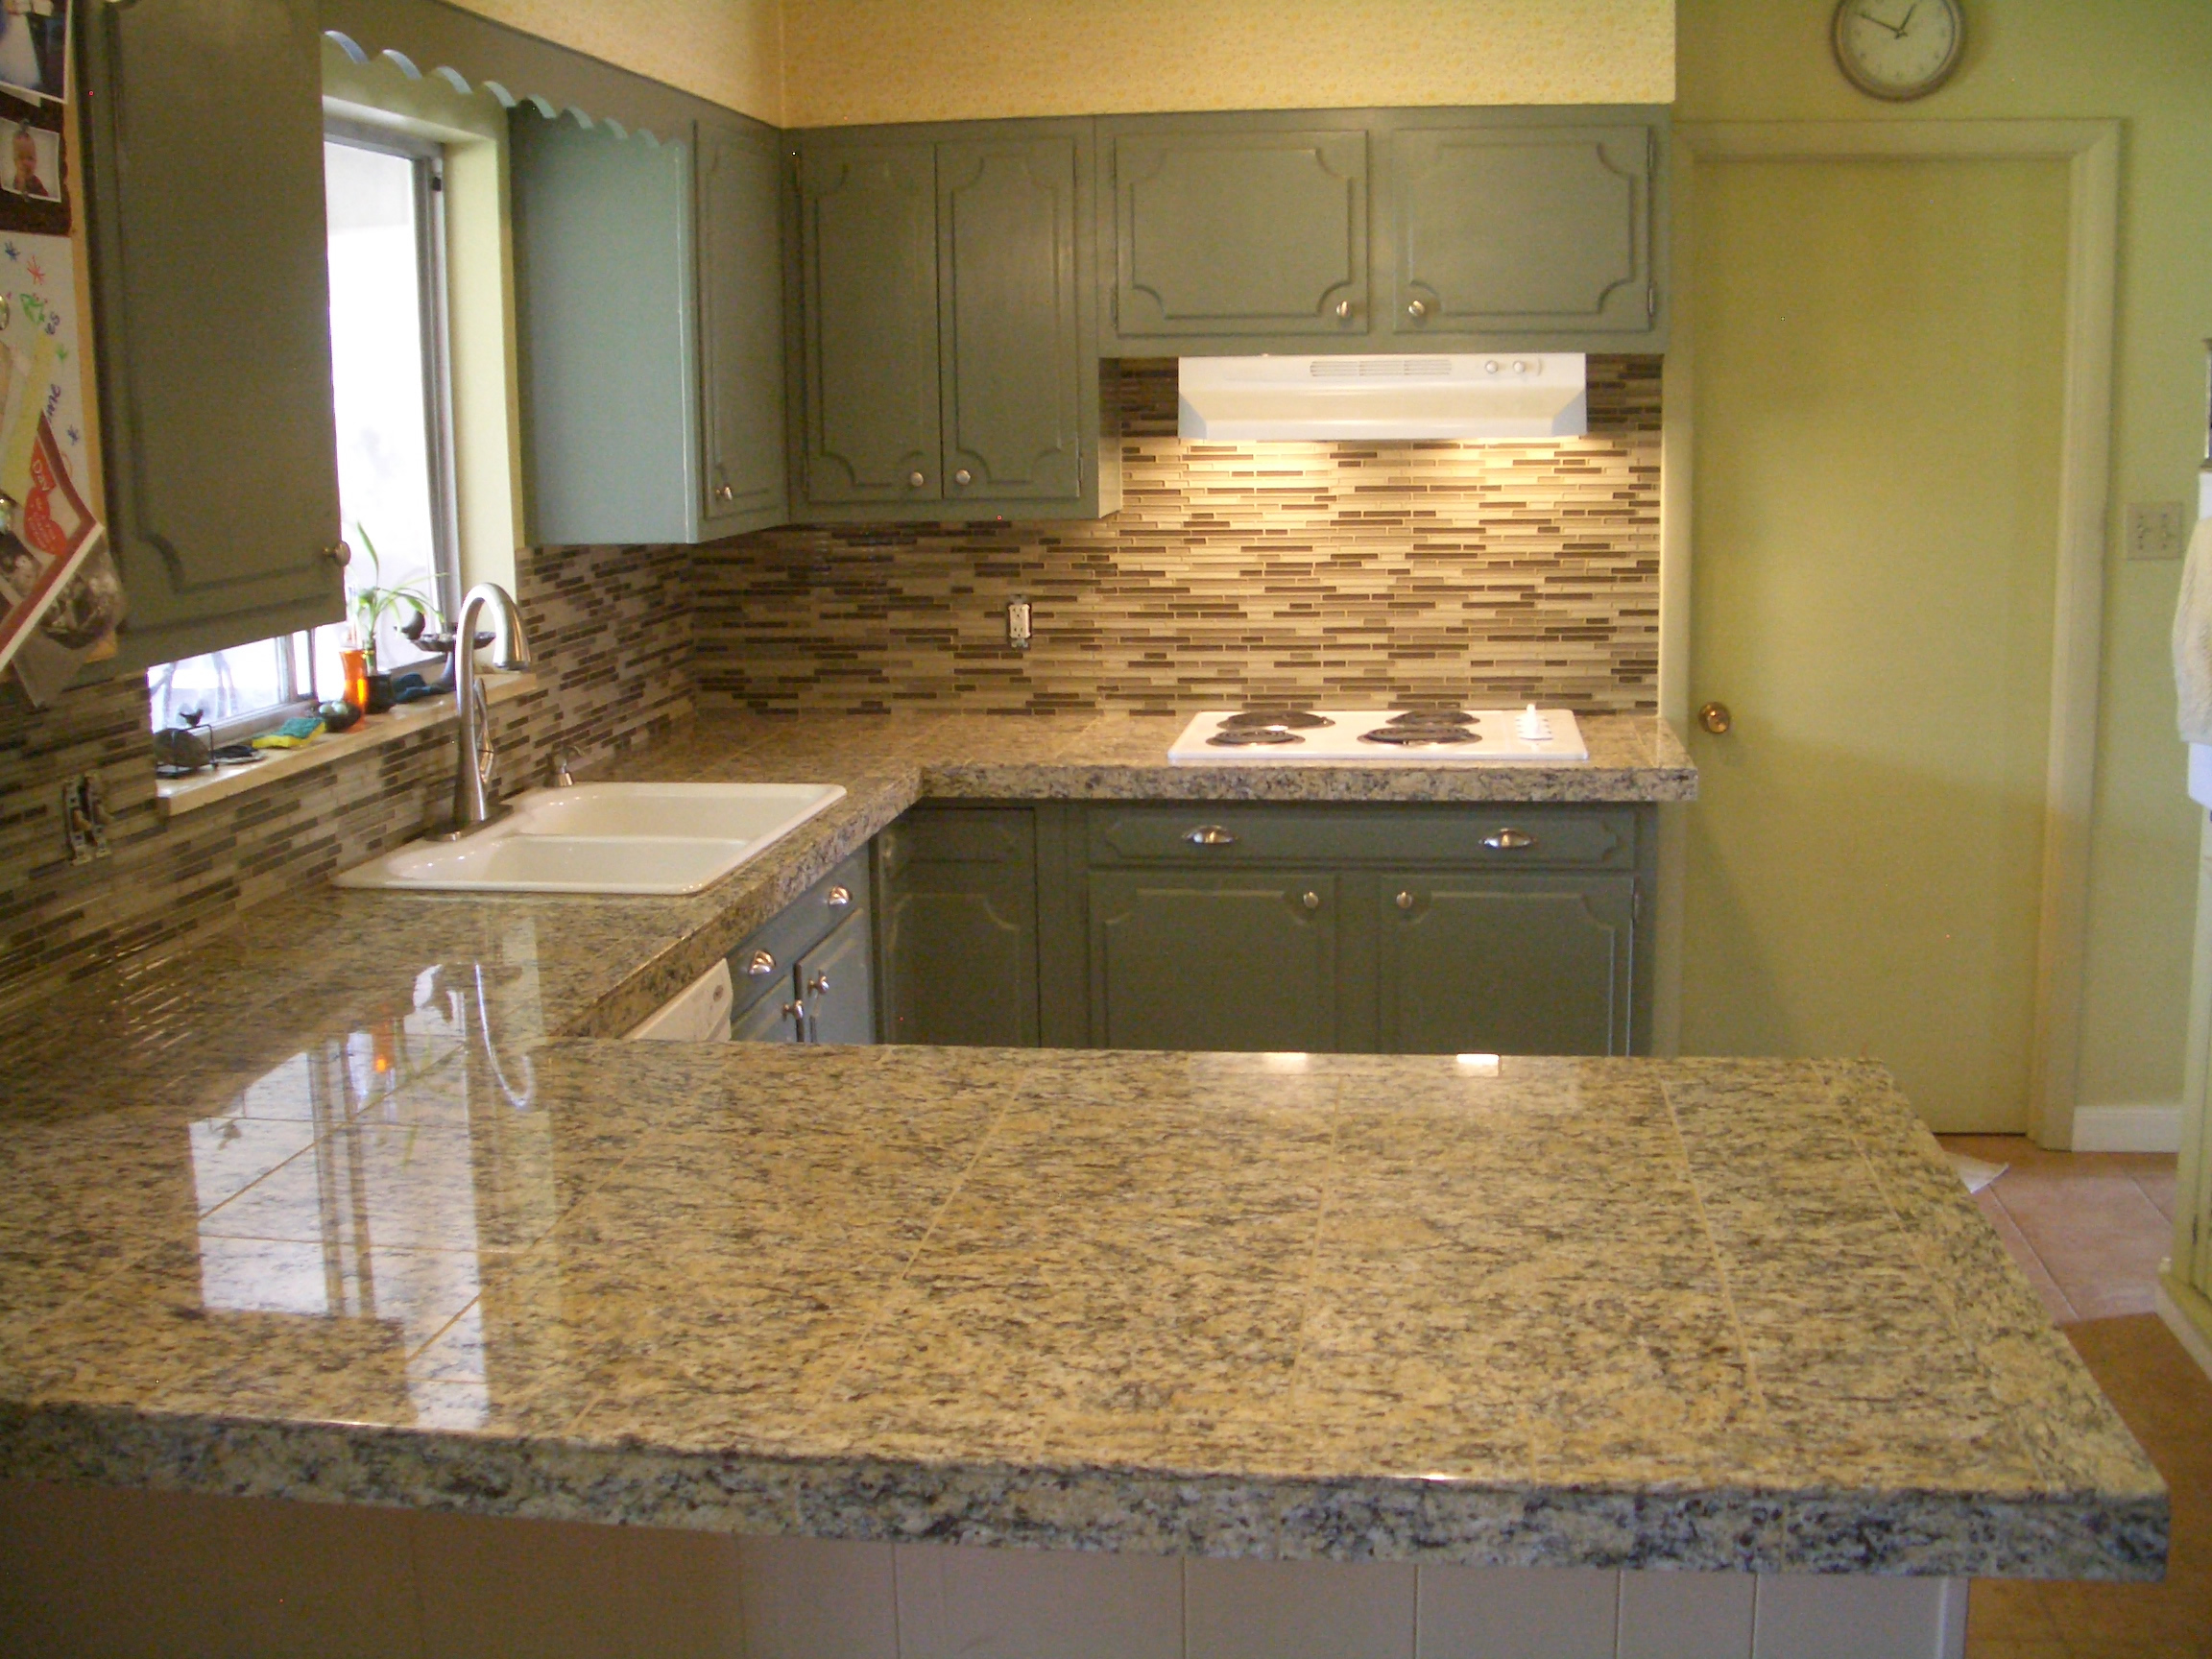 Glass tile kitchen backsplash special only 899 - Kitchen countertops design ...